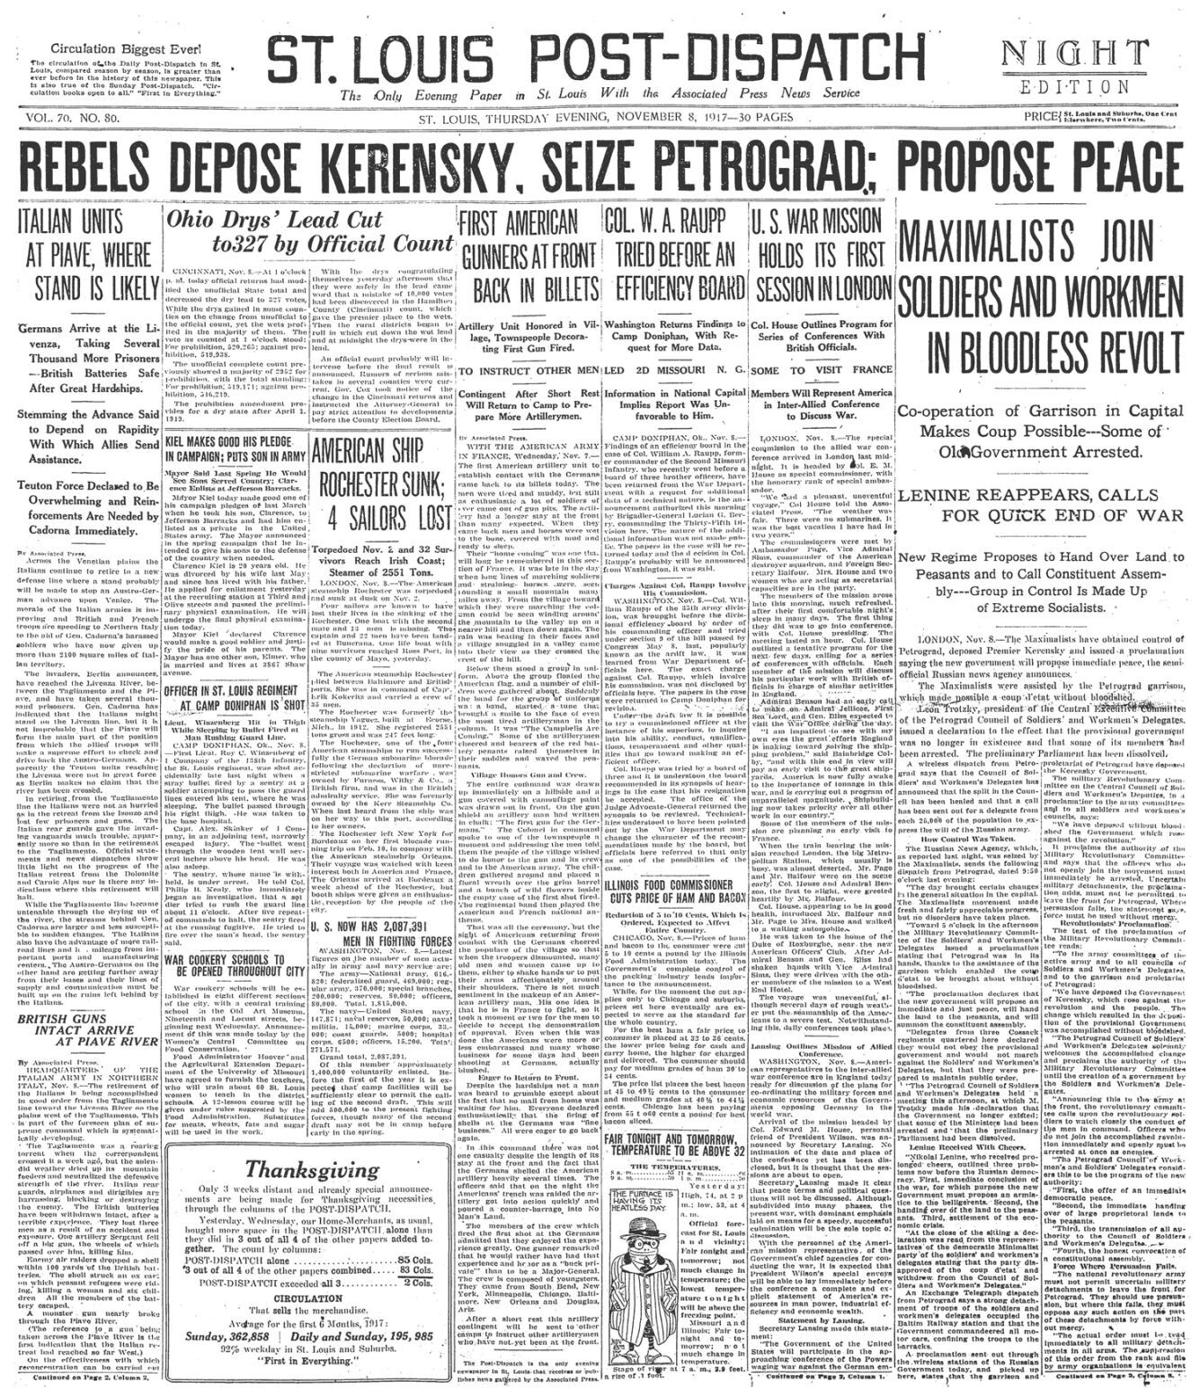 Nov. 8, 1917 front page of the post-dispatch